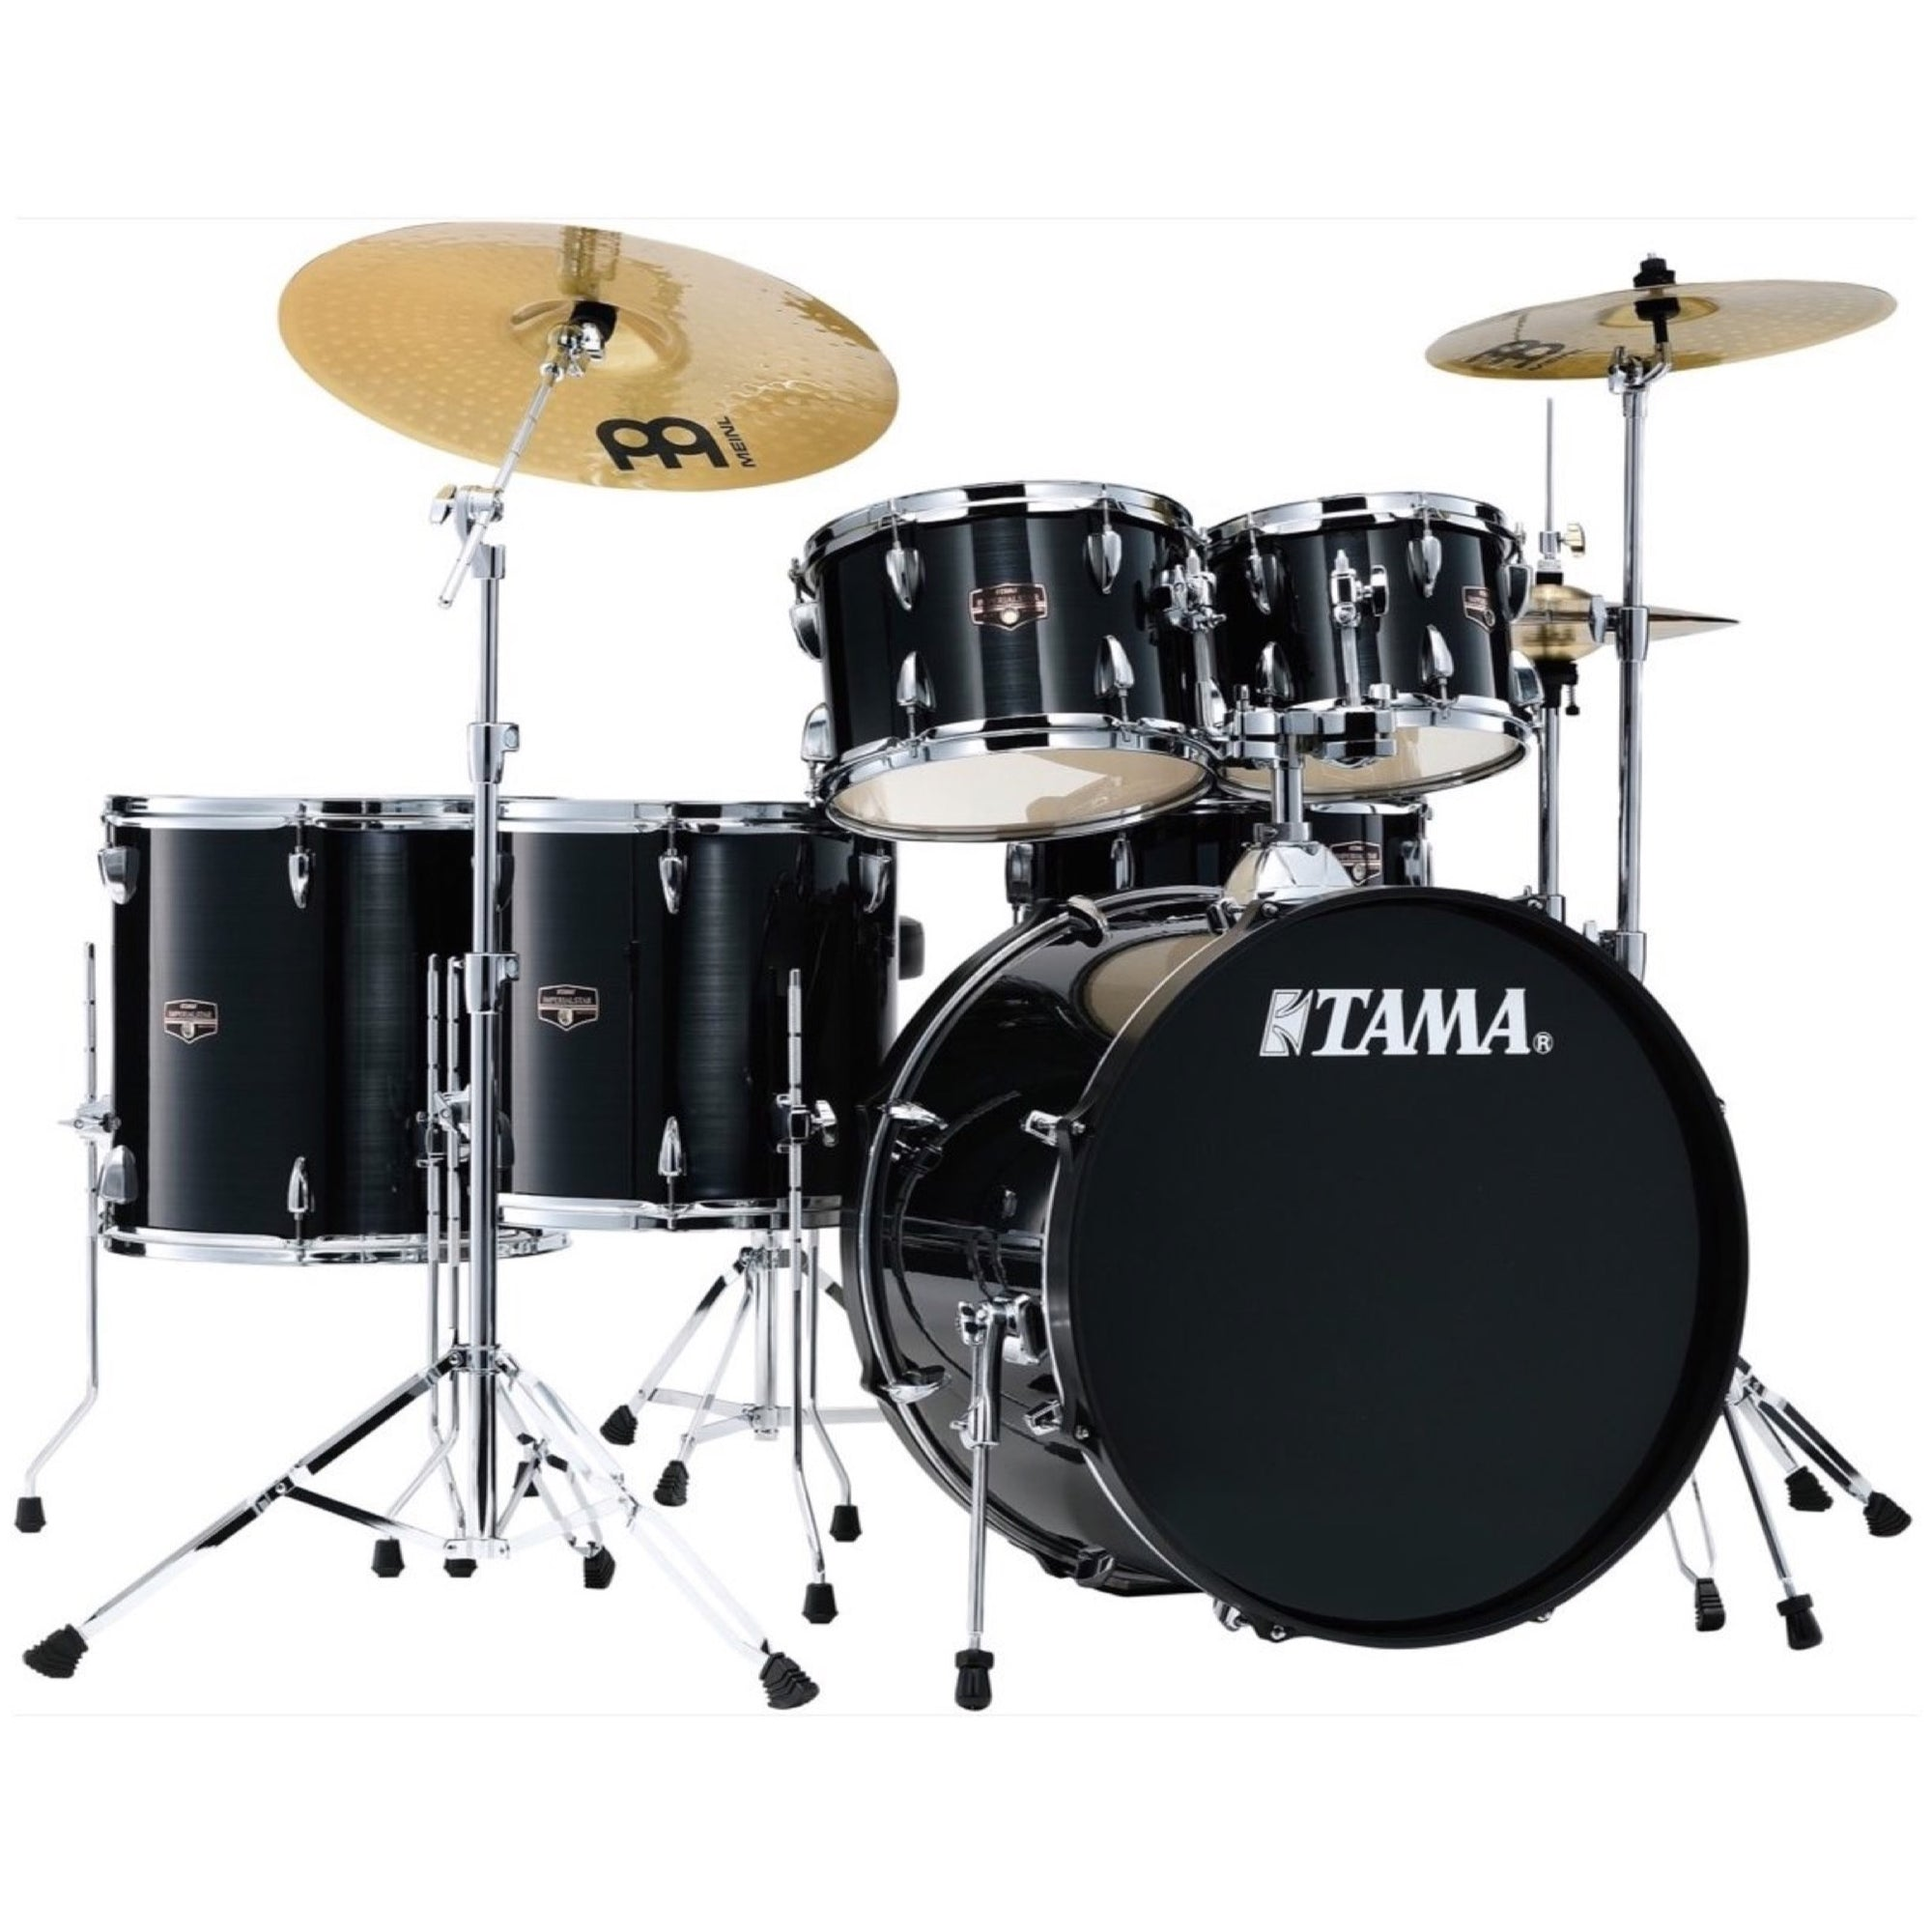 Tama IE62C Imperialstar Drum Kit, 6-Piece (with Meinl Cymbals), Hairline Black